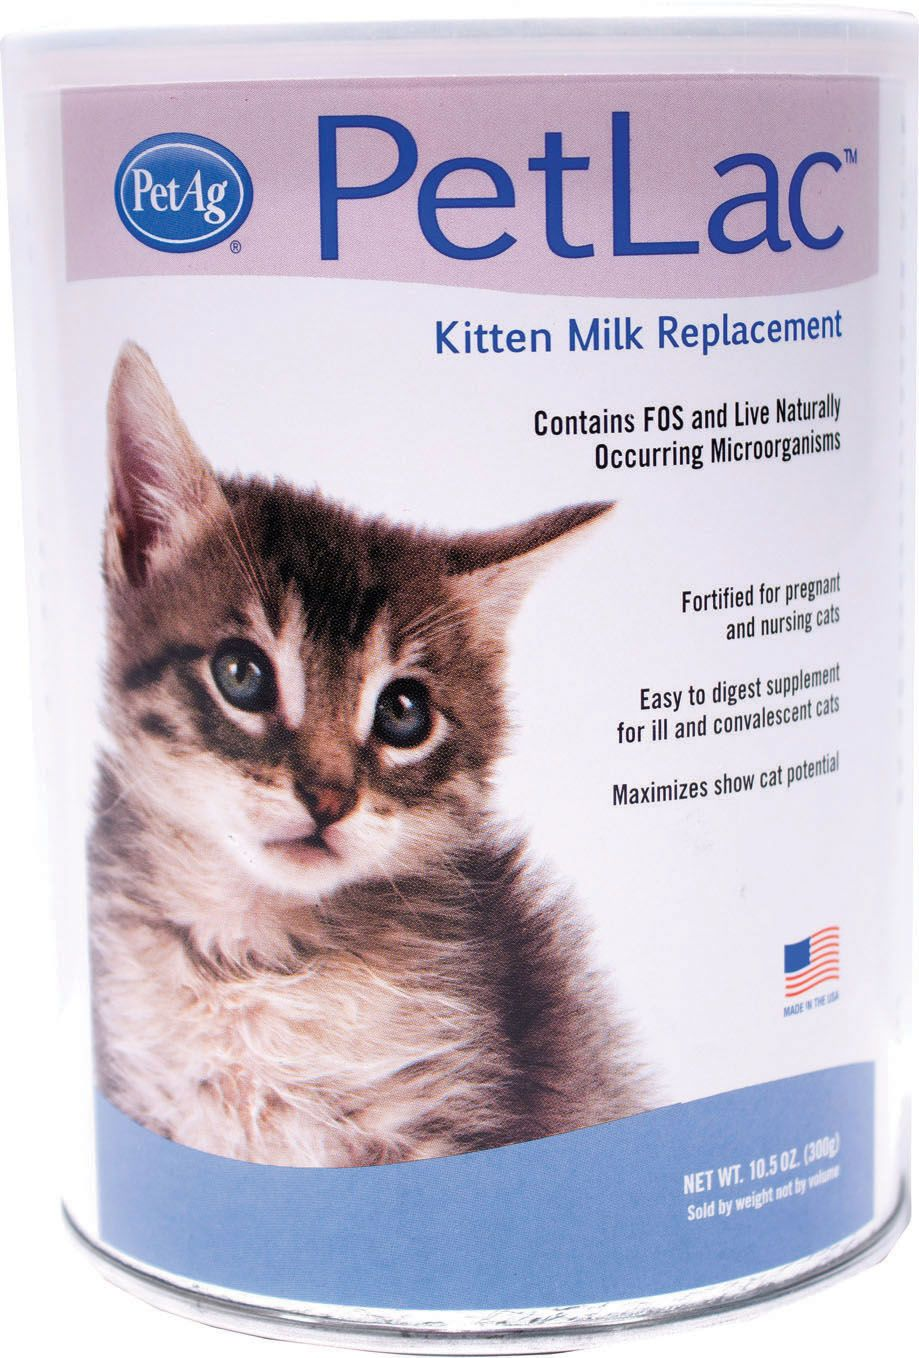 Cats Petlac Kitten Milk Replacement Powder By Pet Ag 10 5 Ounce Cat Health Kittens Best Cat Food